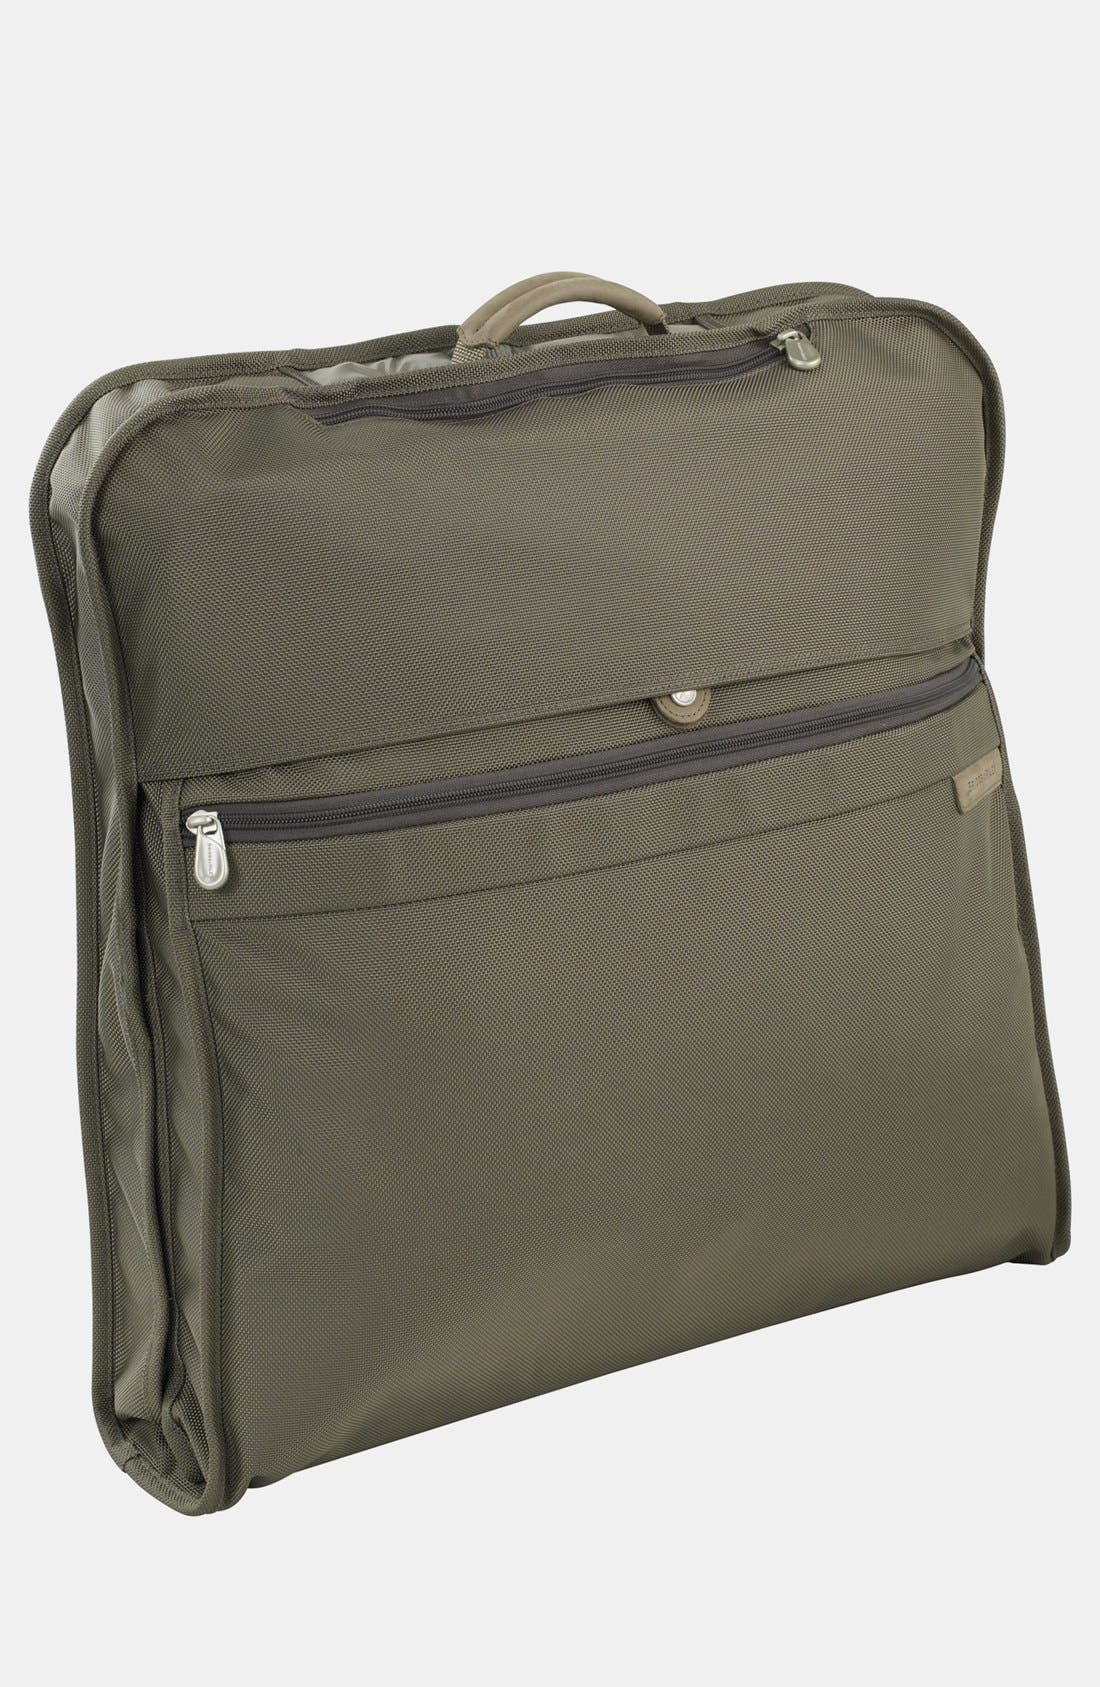 BRIGGS & RILEY, Baseline - Classic Garment Cover, Main thumbnail 1, color, OLIVE